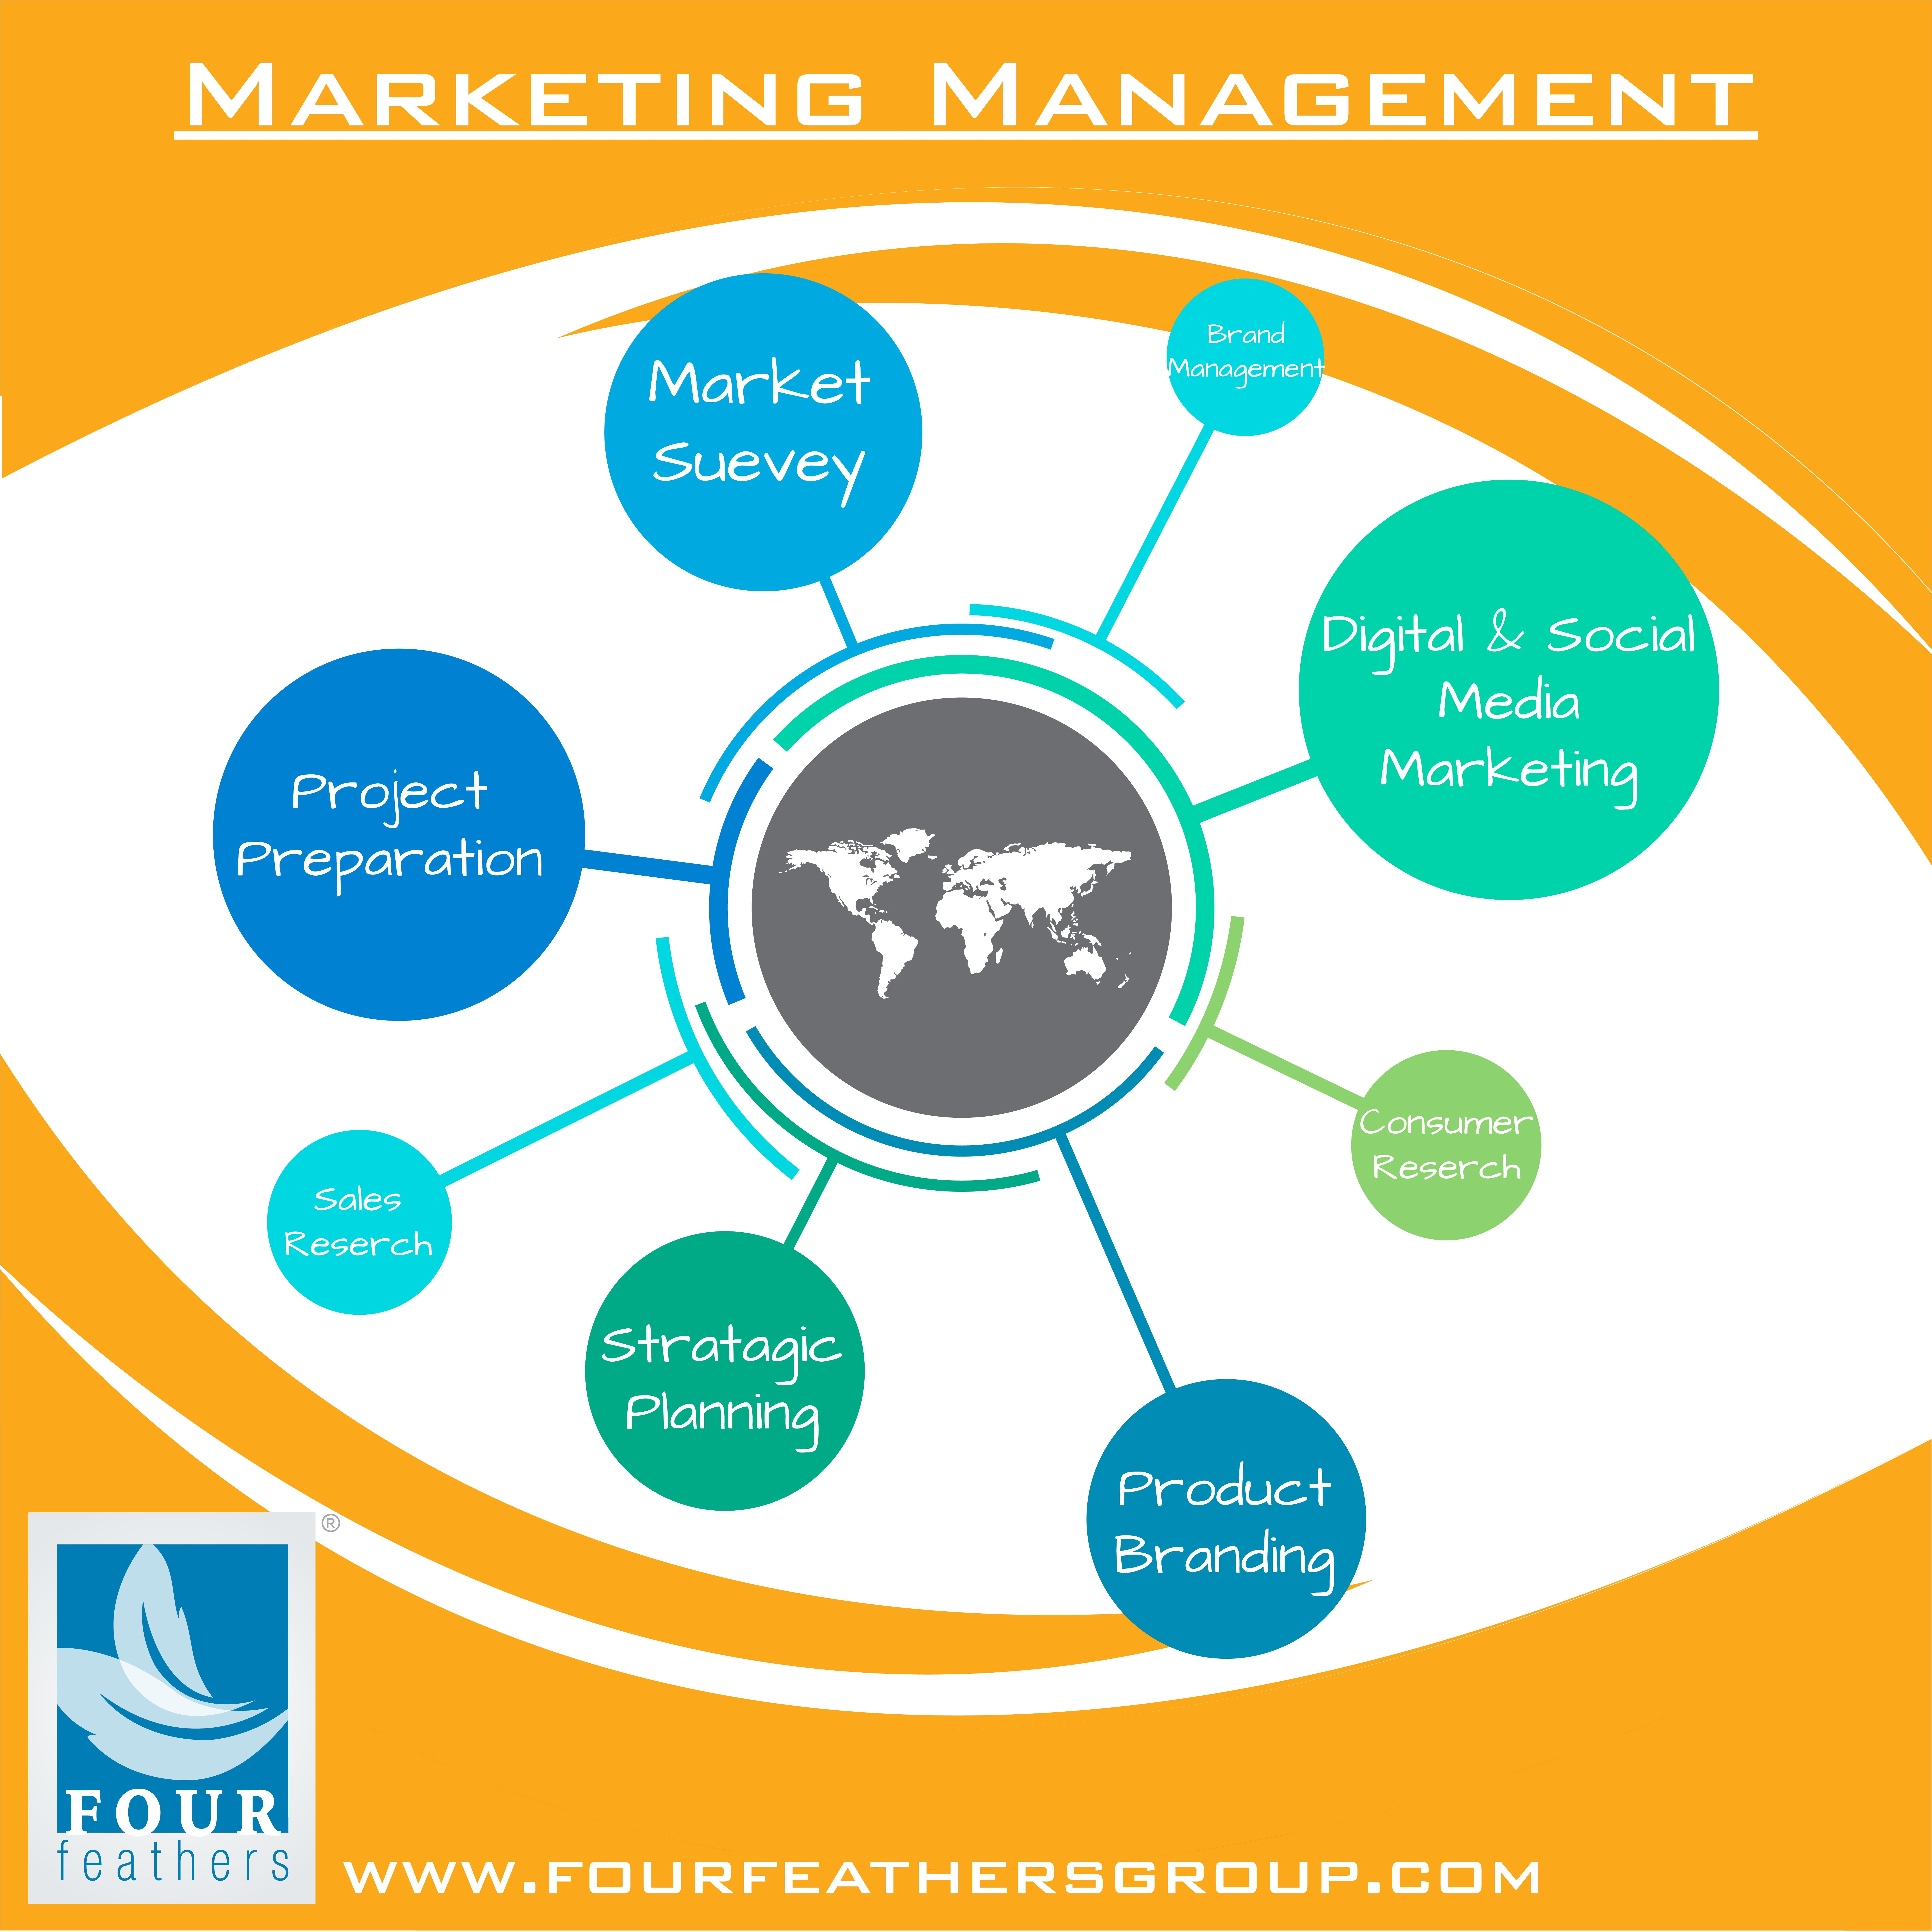 Growth Of #Brands Depends On Proper #Marketing Strategies